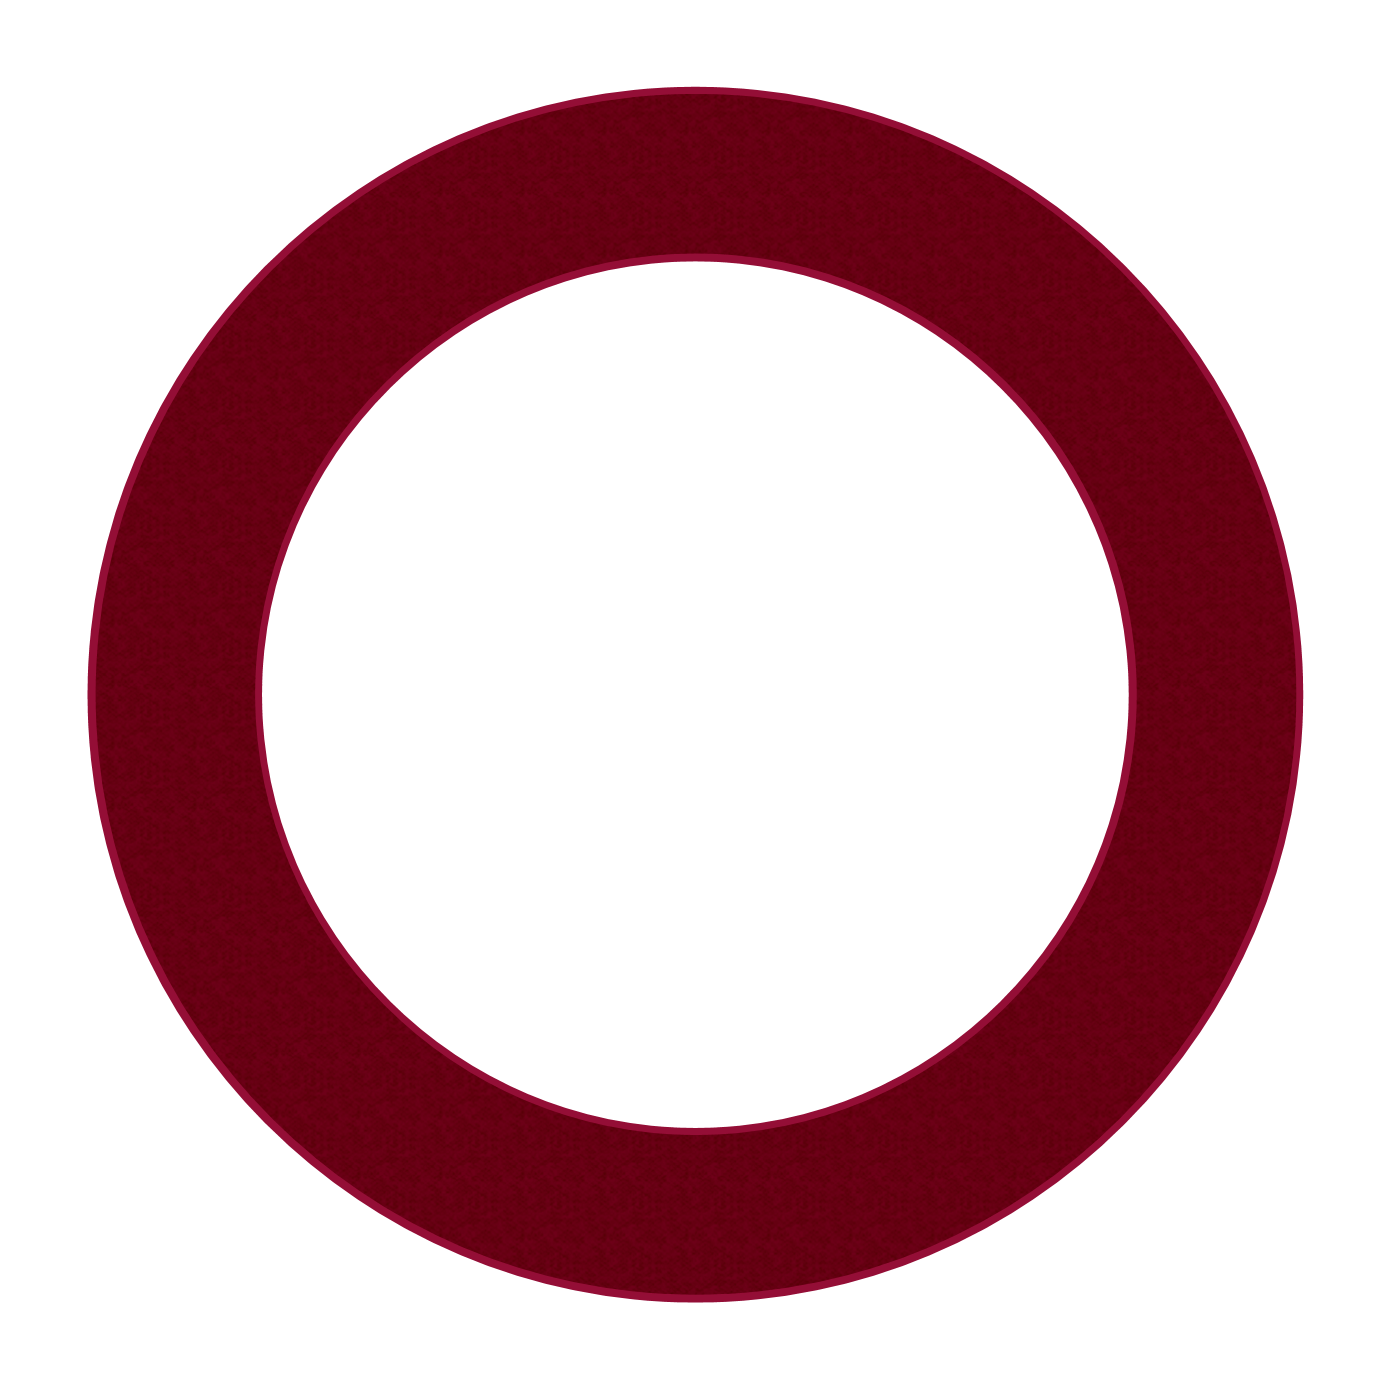 Circle Frame Png Frame Circle a Free Images